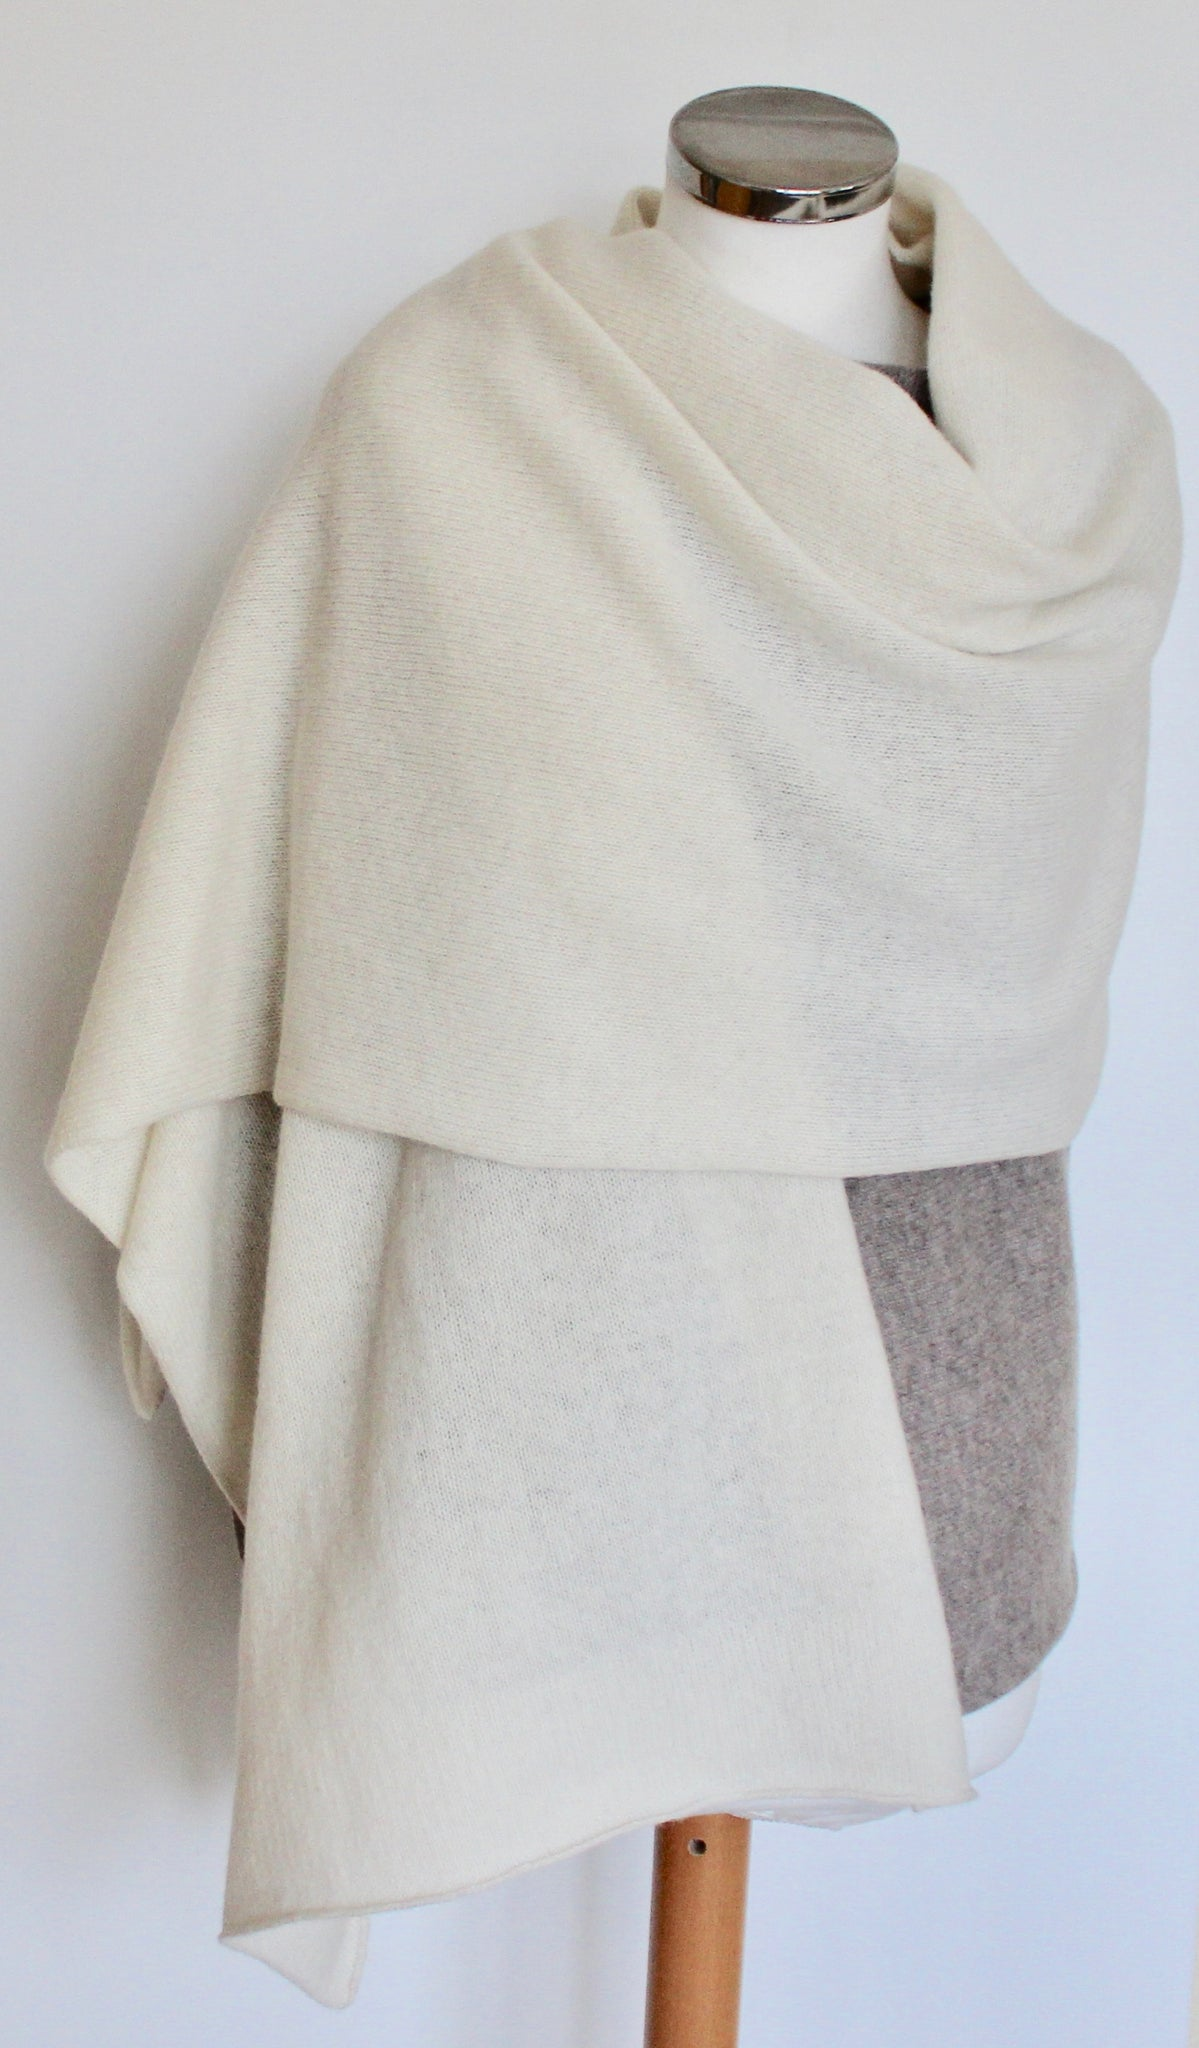 Shawl - Soft Merino Lambswool Shawl/Wrap Cream White